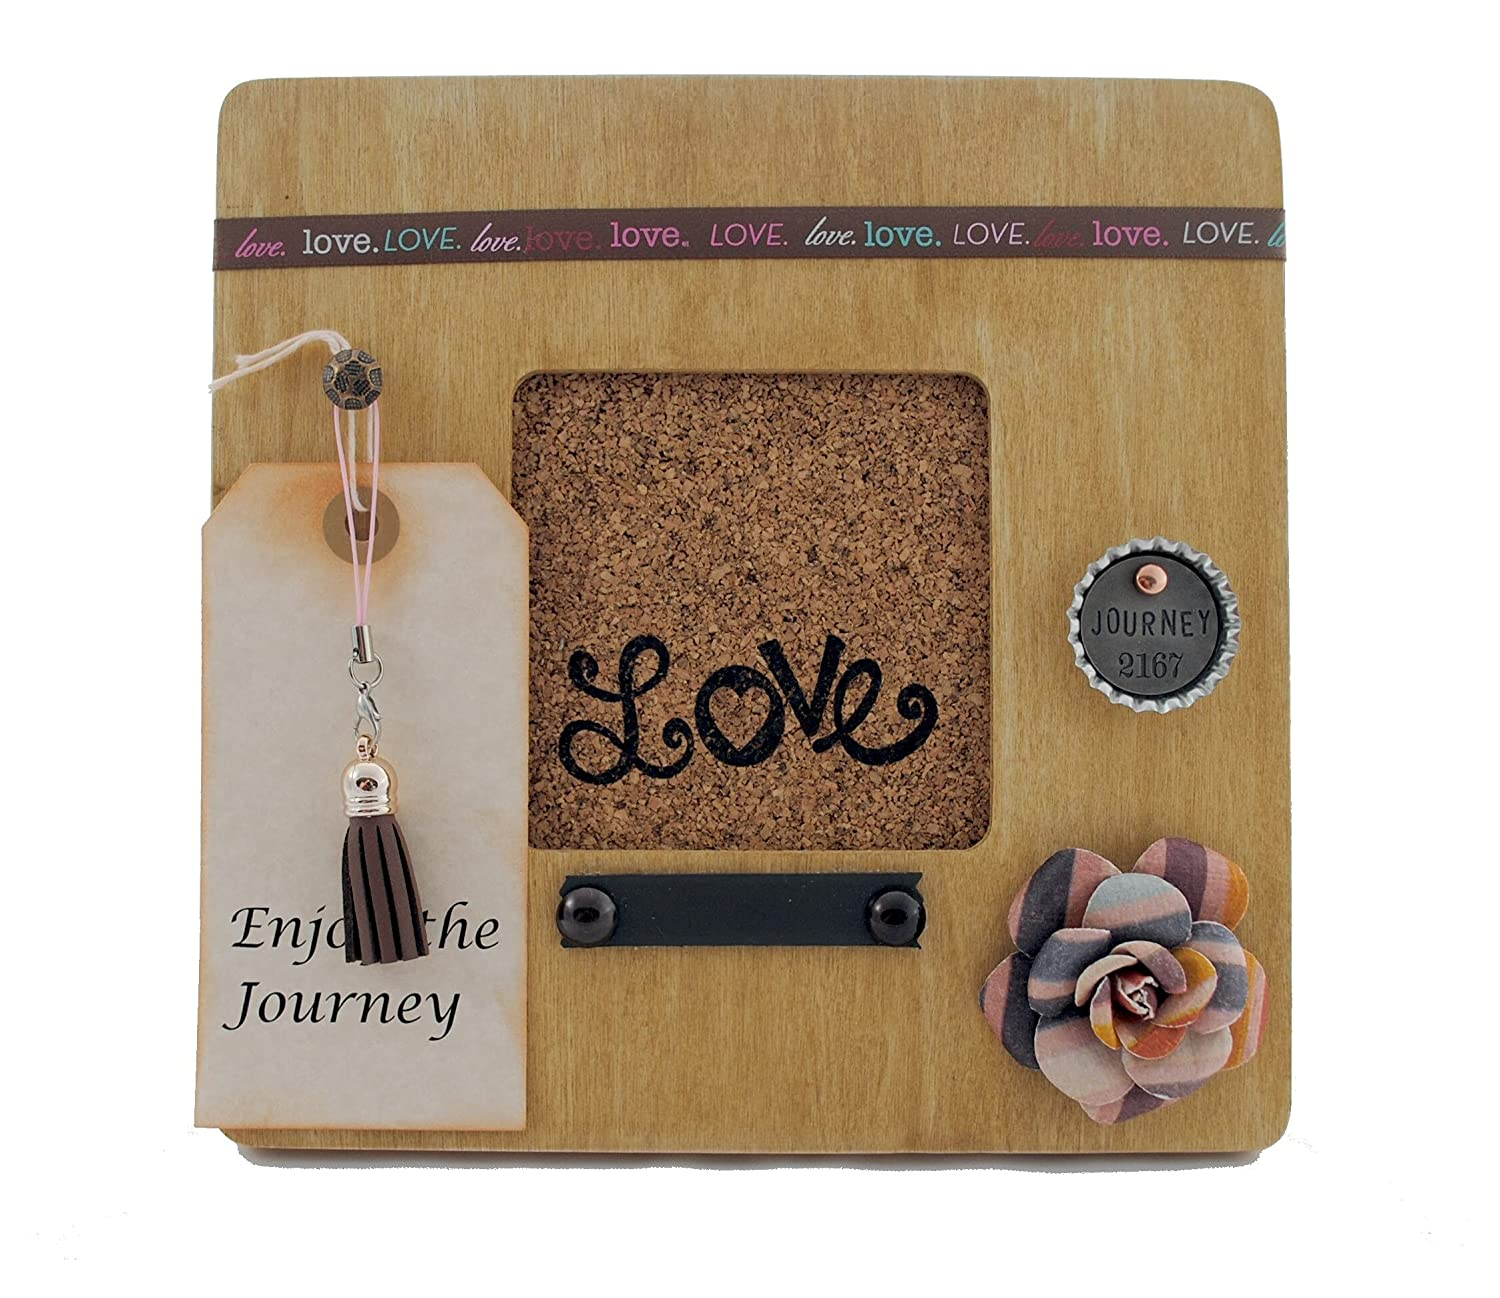 Enjoy the Journey An Mail Phoenix Mall order Inspirational Deco Sewing Craft Room